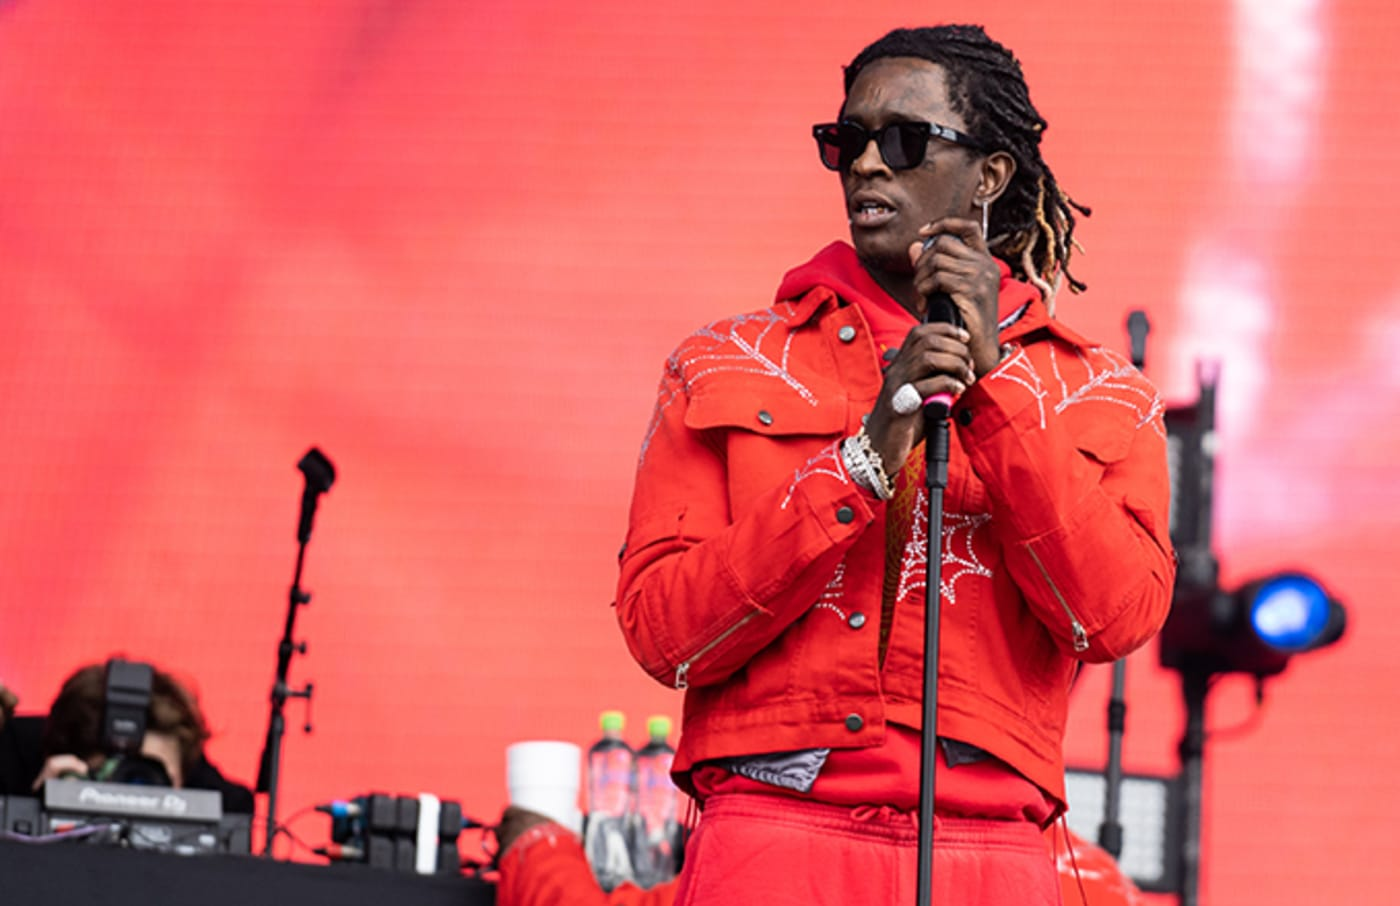 This is a photo of Young Thug.